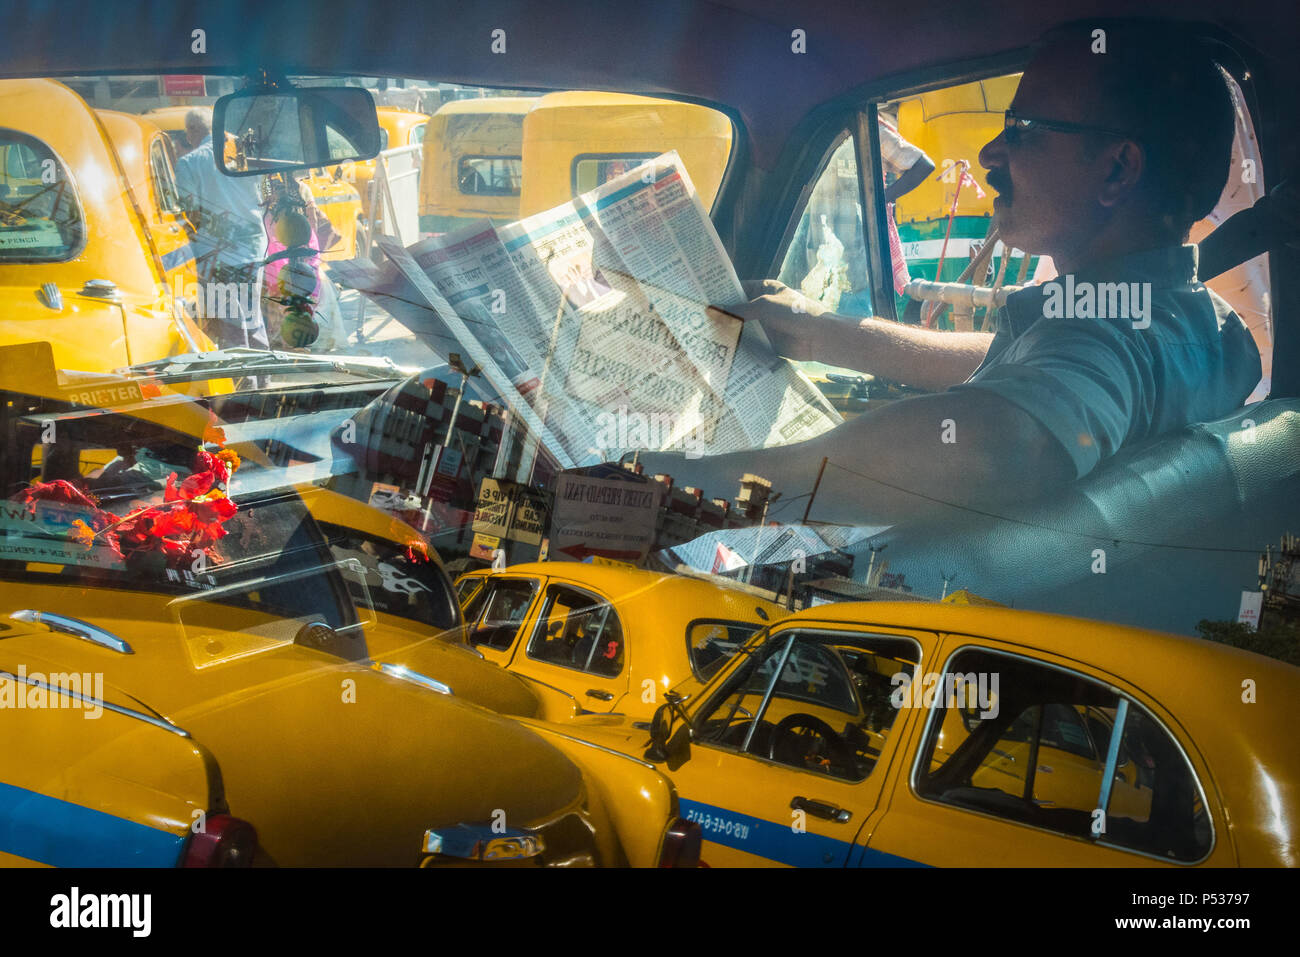 A taxi driver in a queue of Hindustan Ambassadors, the reflections of other cars shining on the windows. Kolkata, India. - Stock Image